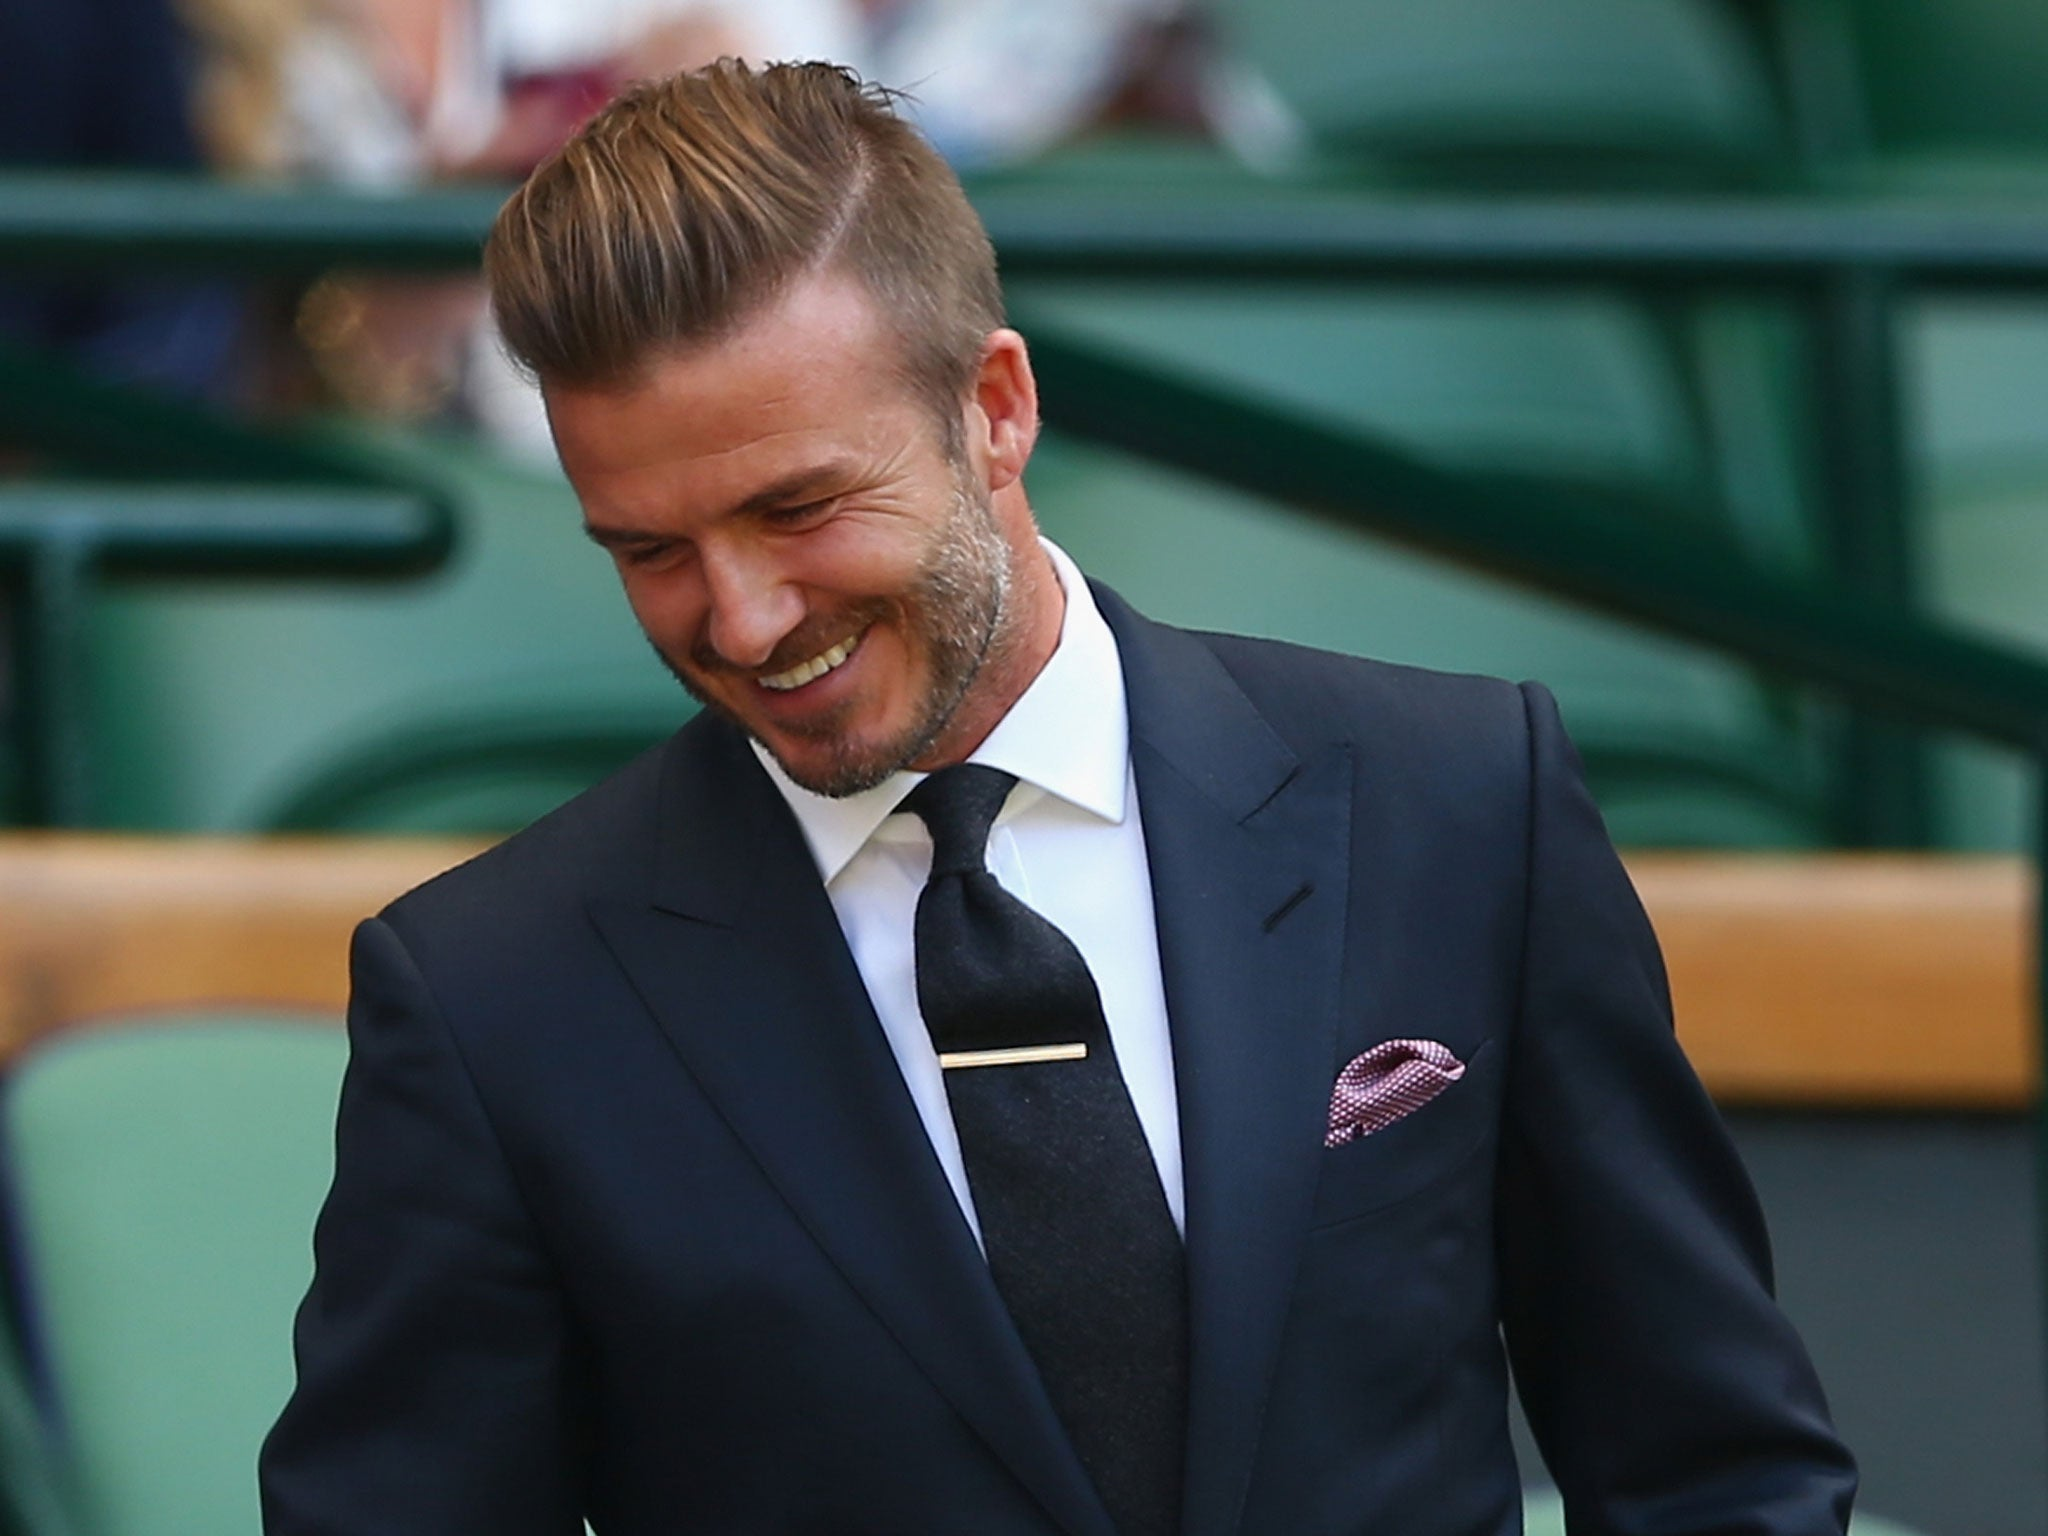 David Beckham video: Former England captain shows off his ... David Beckham